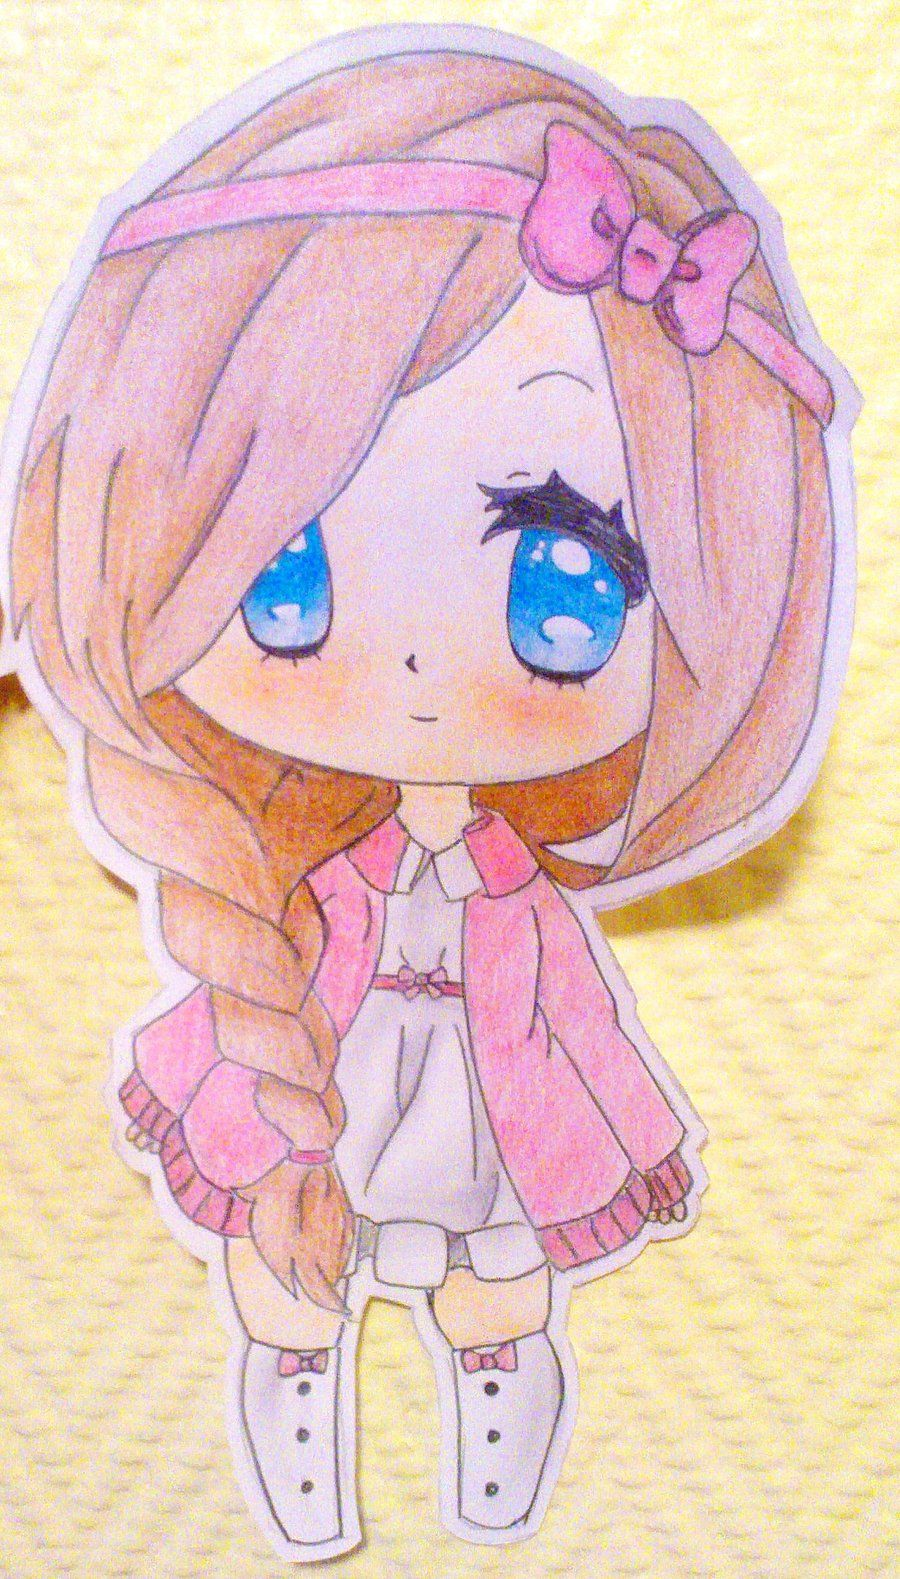 Pin by Elaine Montilla on DRAWING Chibi girl, Chibi girl